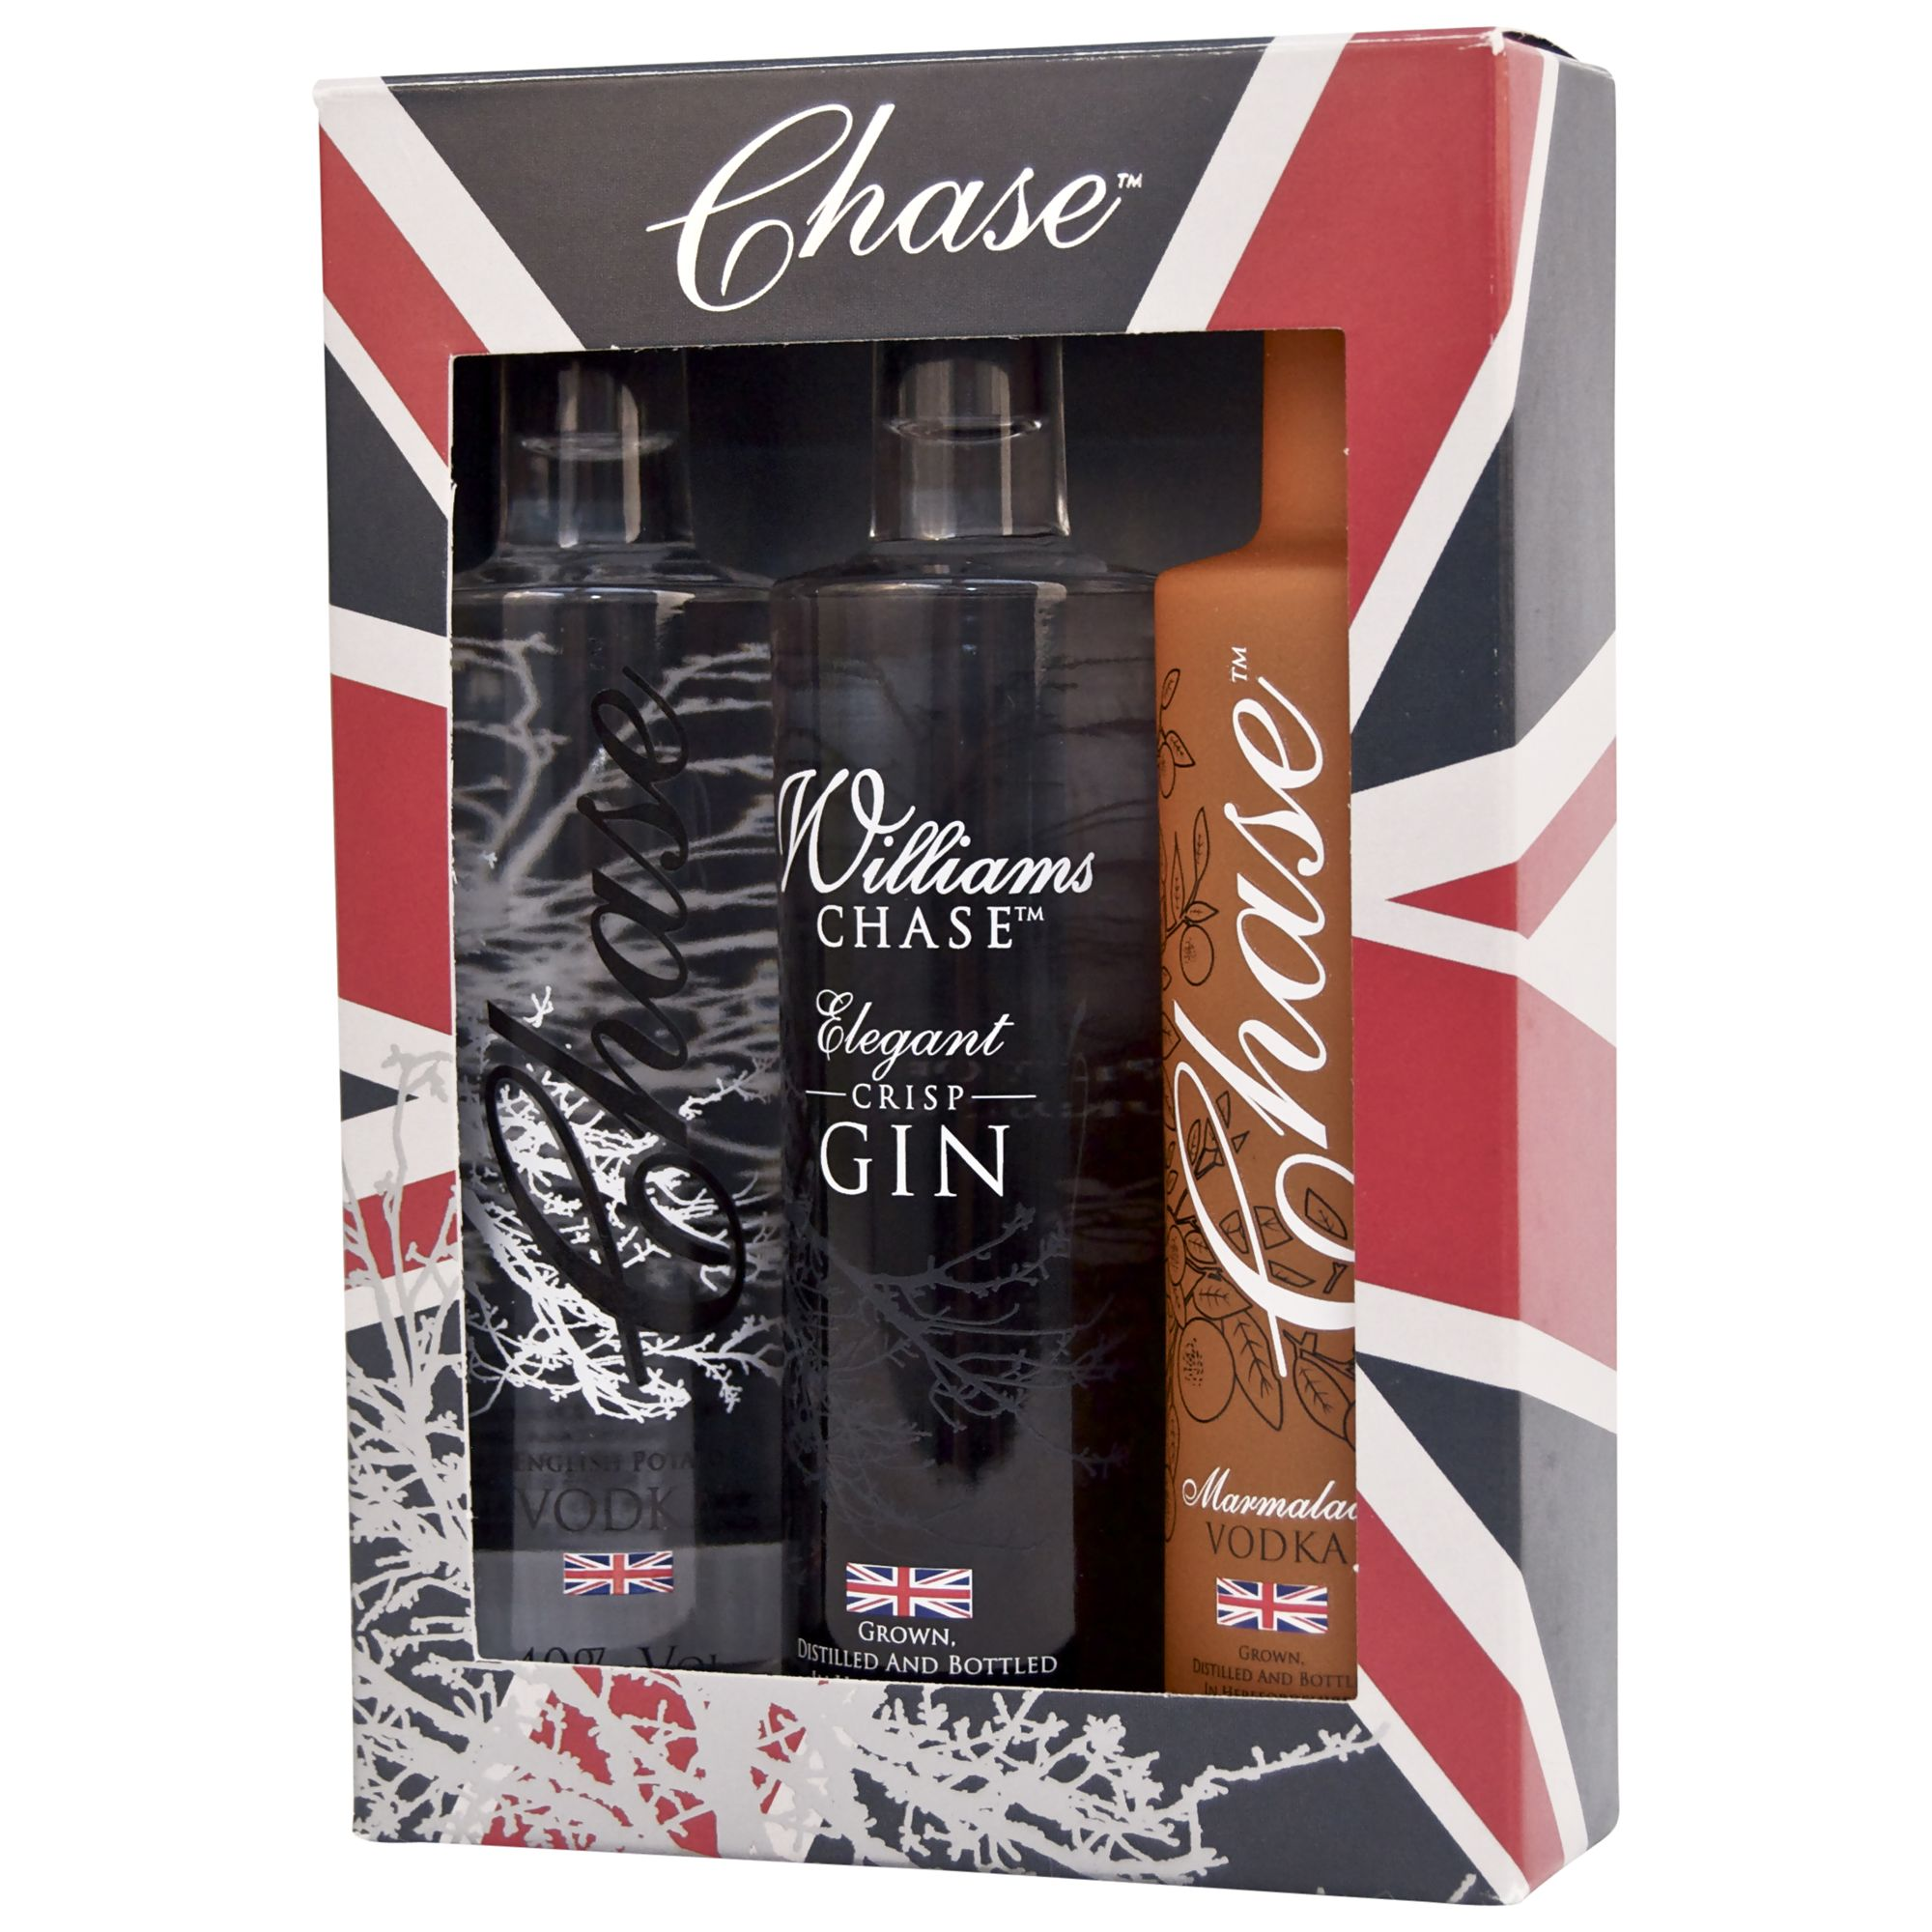 Chase Minature Gin And Vodka Gift Set